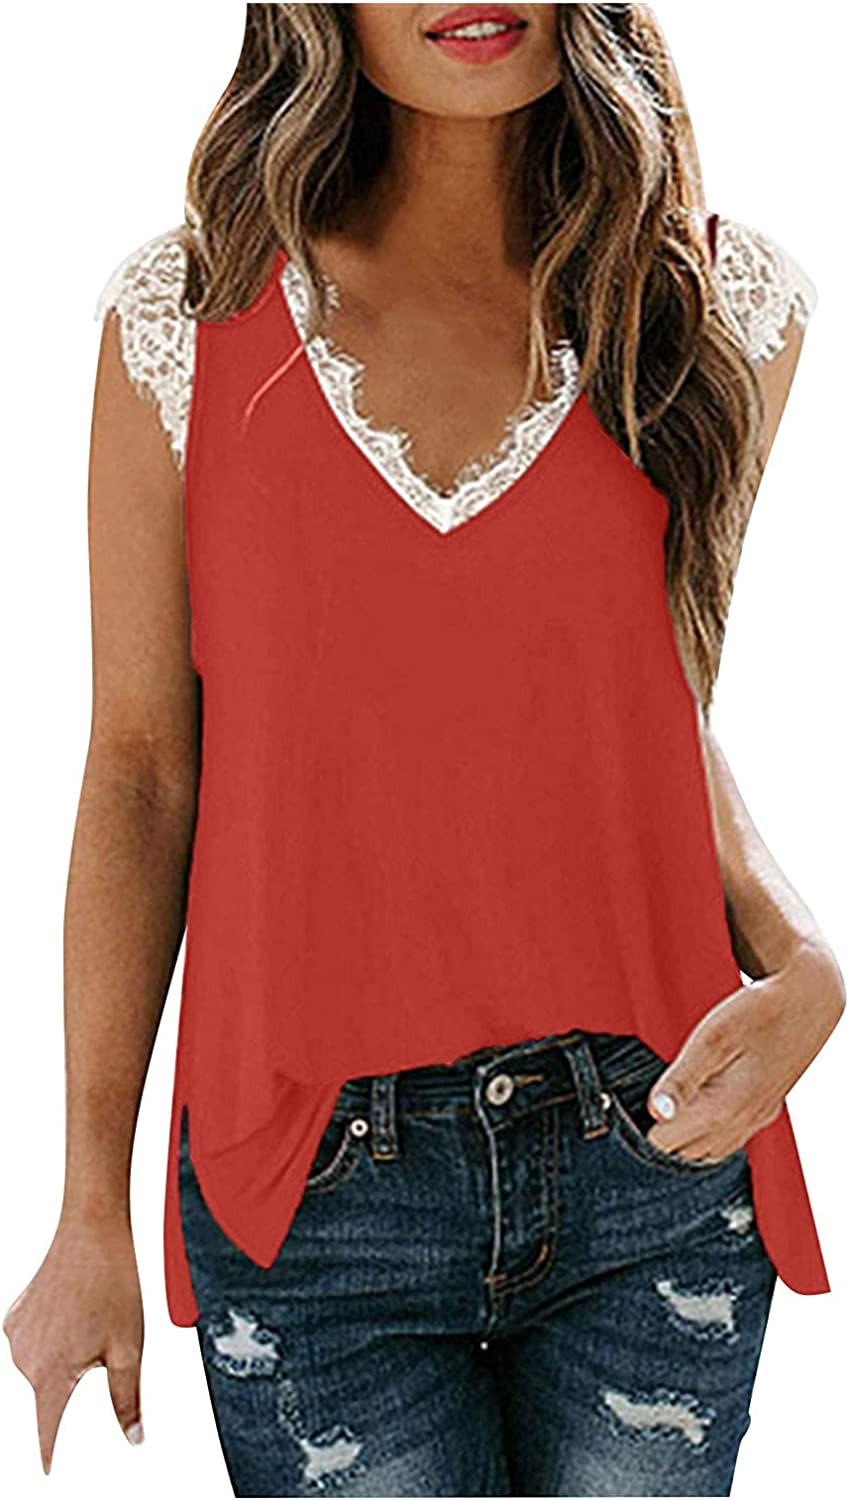 Womens Tank Tops Loose Fit Plus Size,Women Lace Trim Tank Tops Casual Summer Elegant Sleeveless Blouses